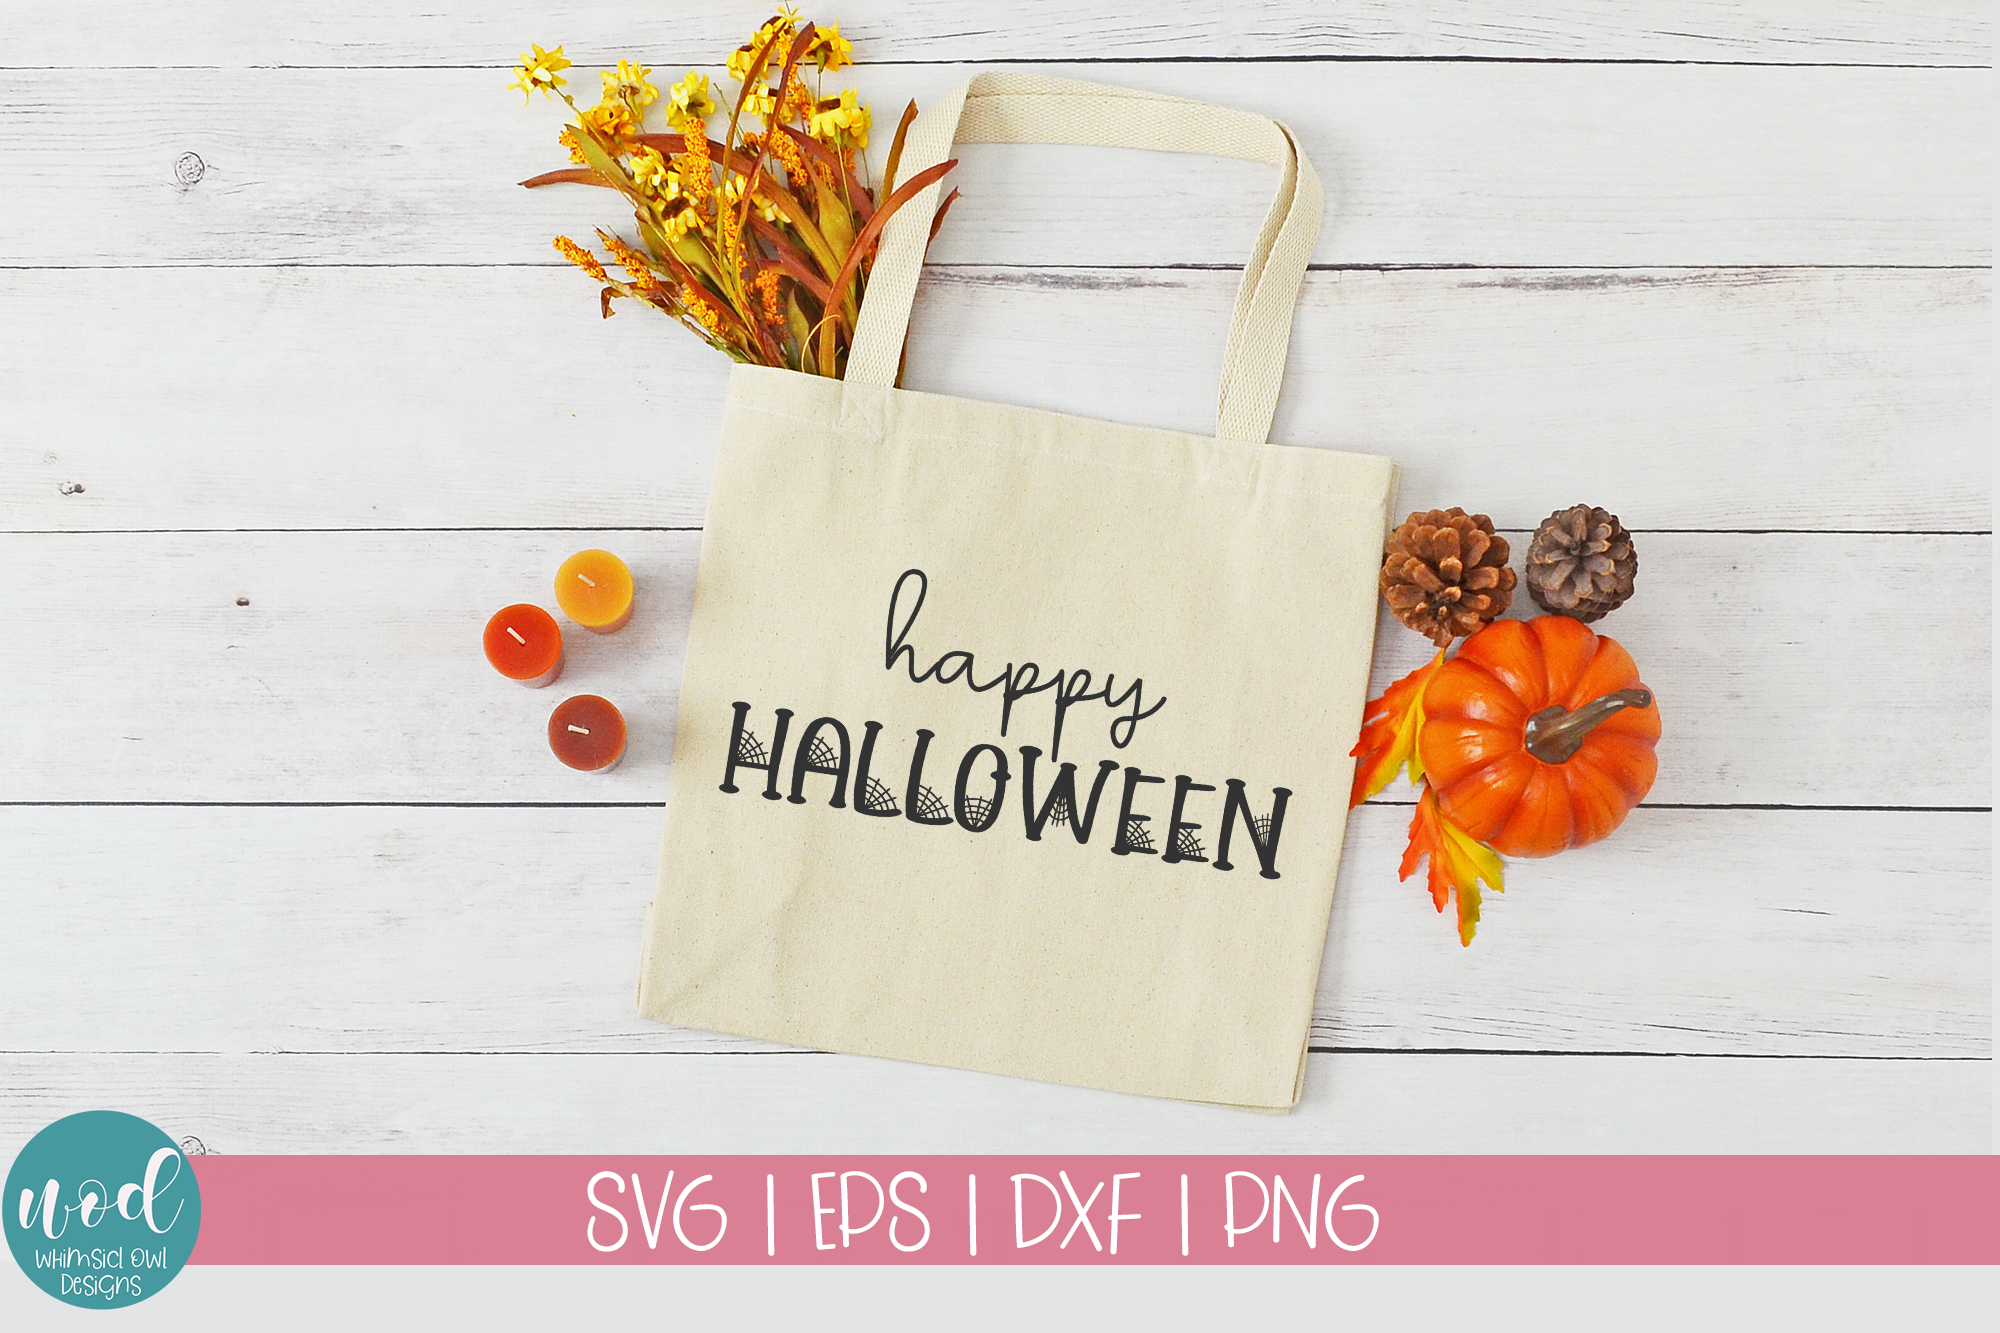 Happy Halloween SVG File example image 2